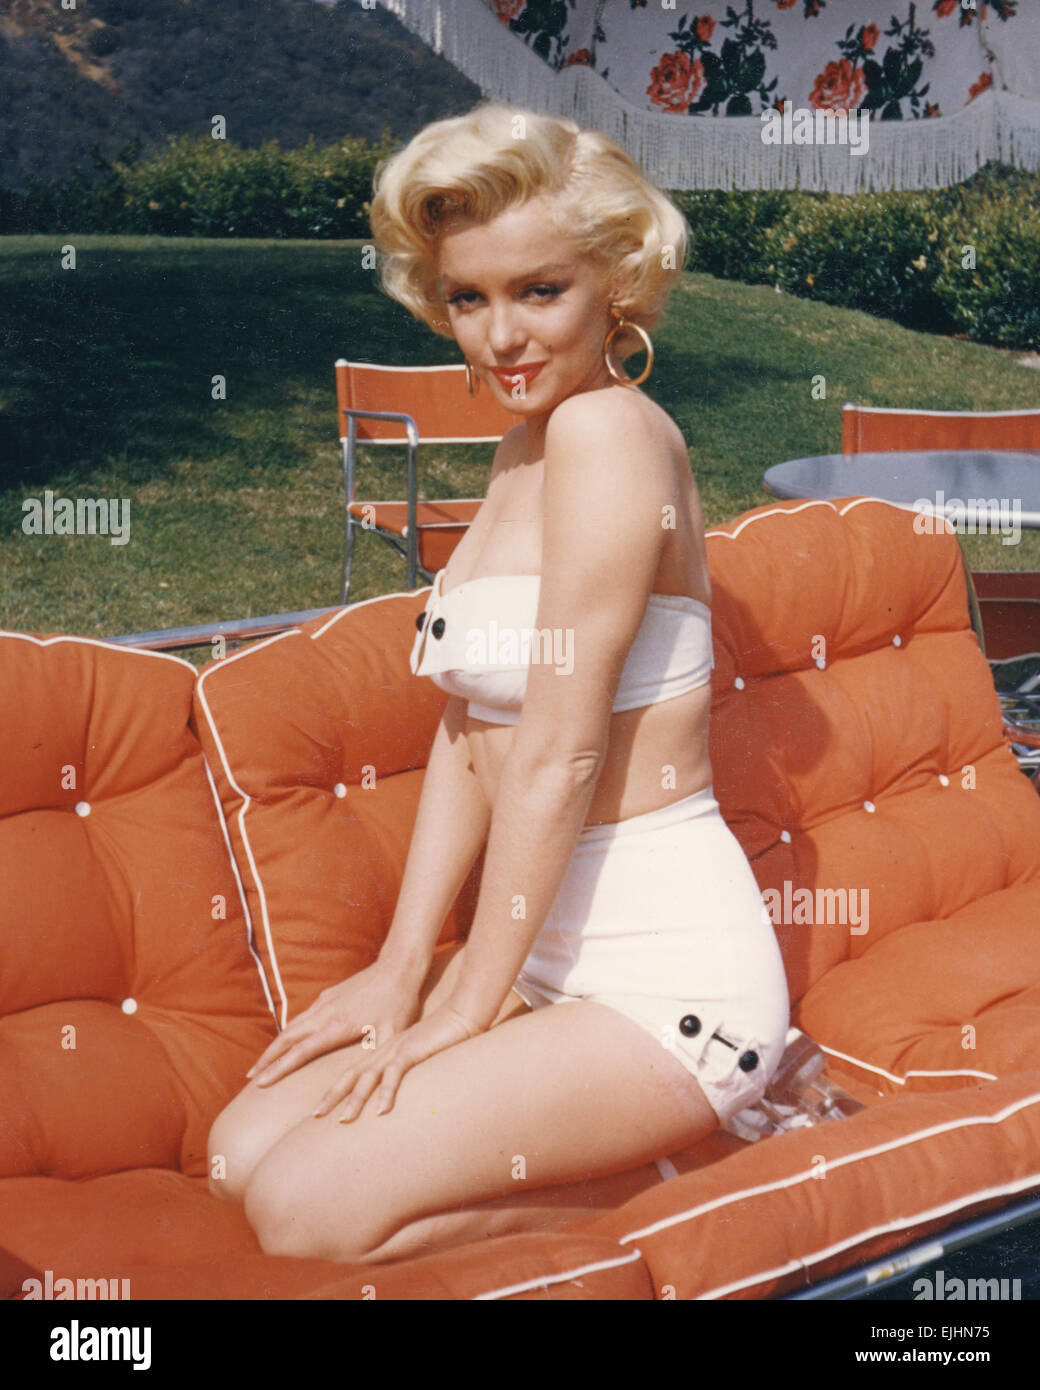 MARILYN MONROE (1926-1962) US film actress - Stock Image